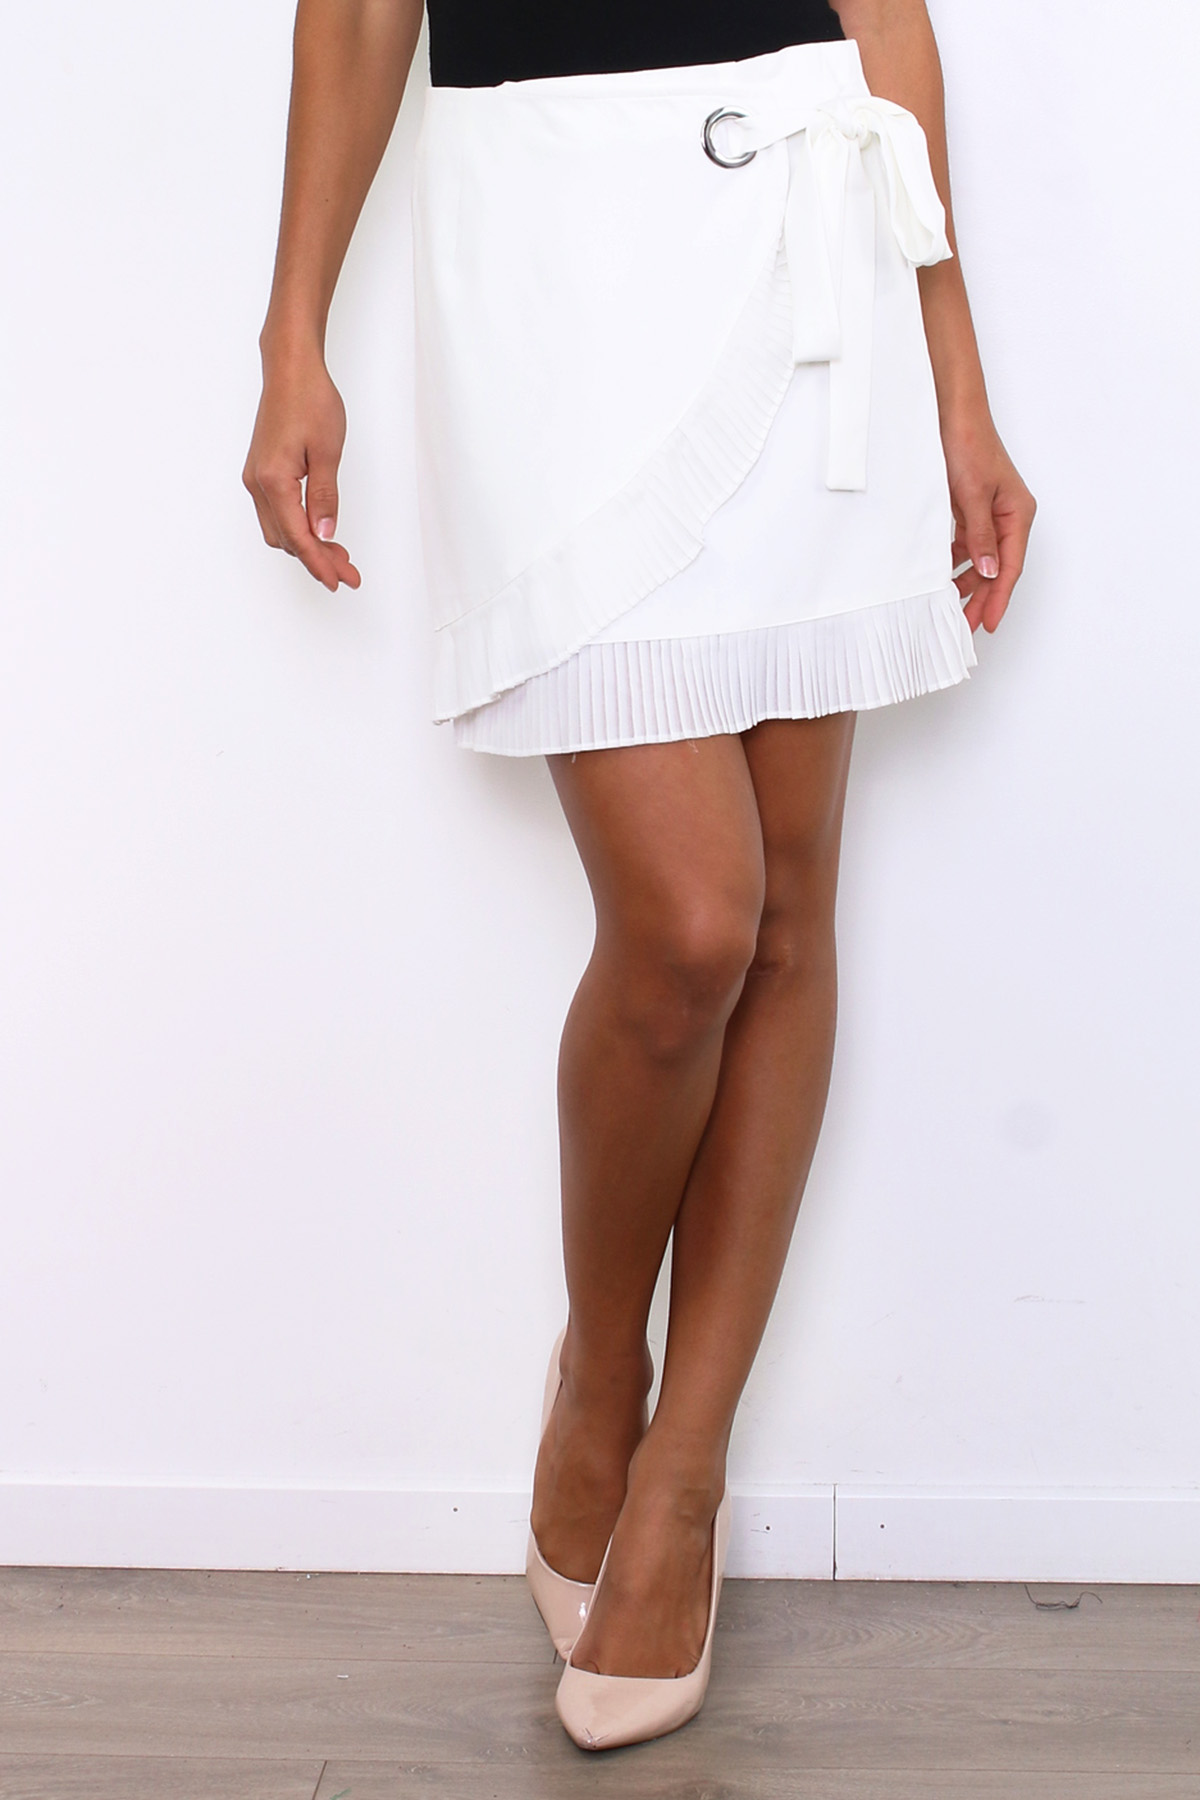 Jupes Femme Blanc ATTENTIF R239 #c eFashion Paris